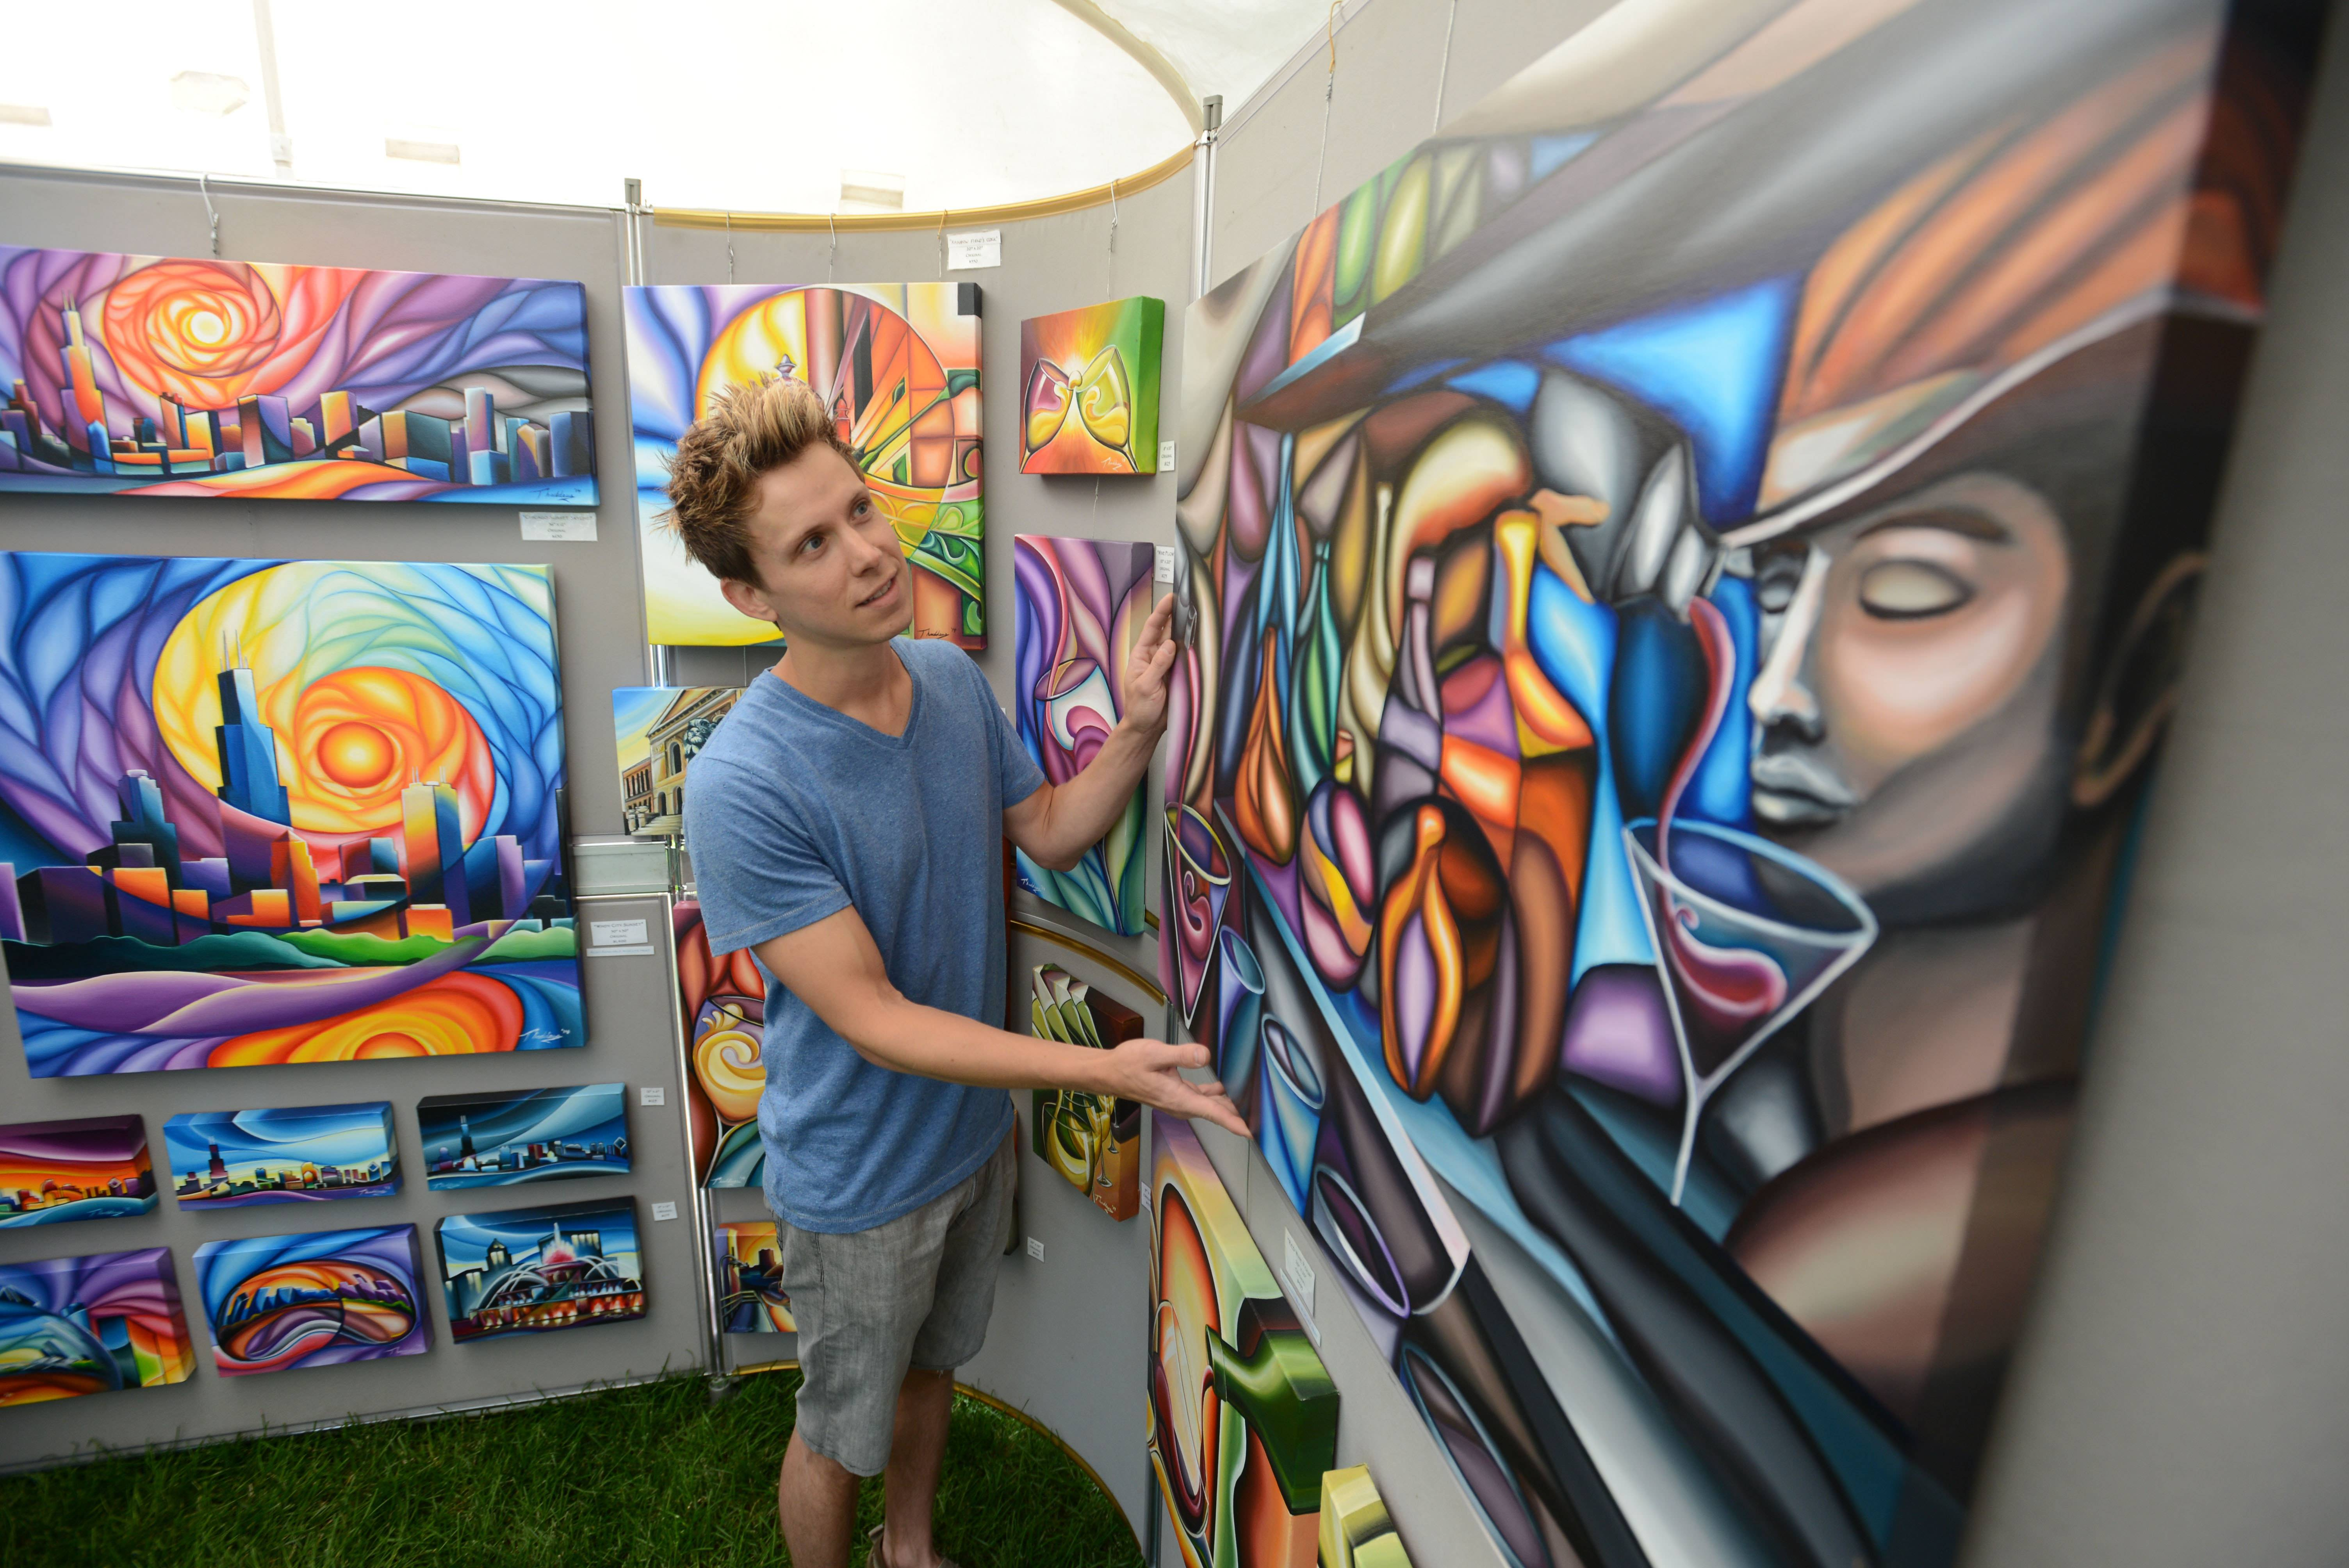 Peter Thaddeus of Warrenville adjusts his painting. The Art in Bloom festival ran from 10 a.m. to 5 p.m. Saturday and 10 a.m. to 4 p.m. Sunday at Cantigny Park in Wheaton.